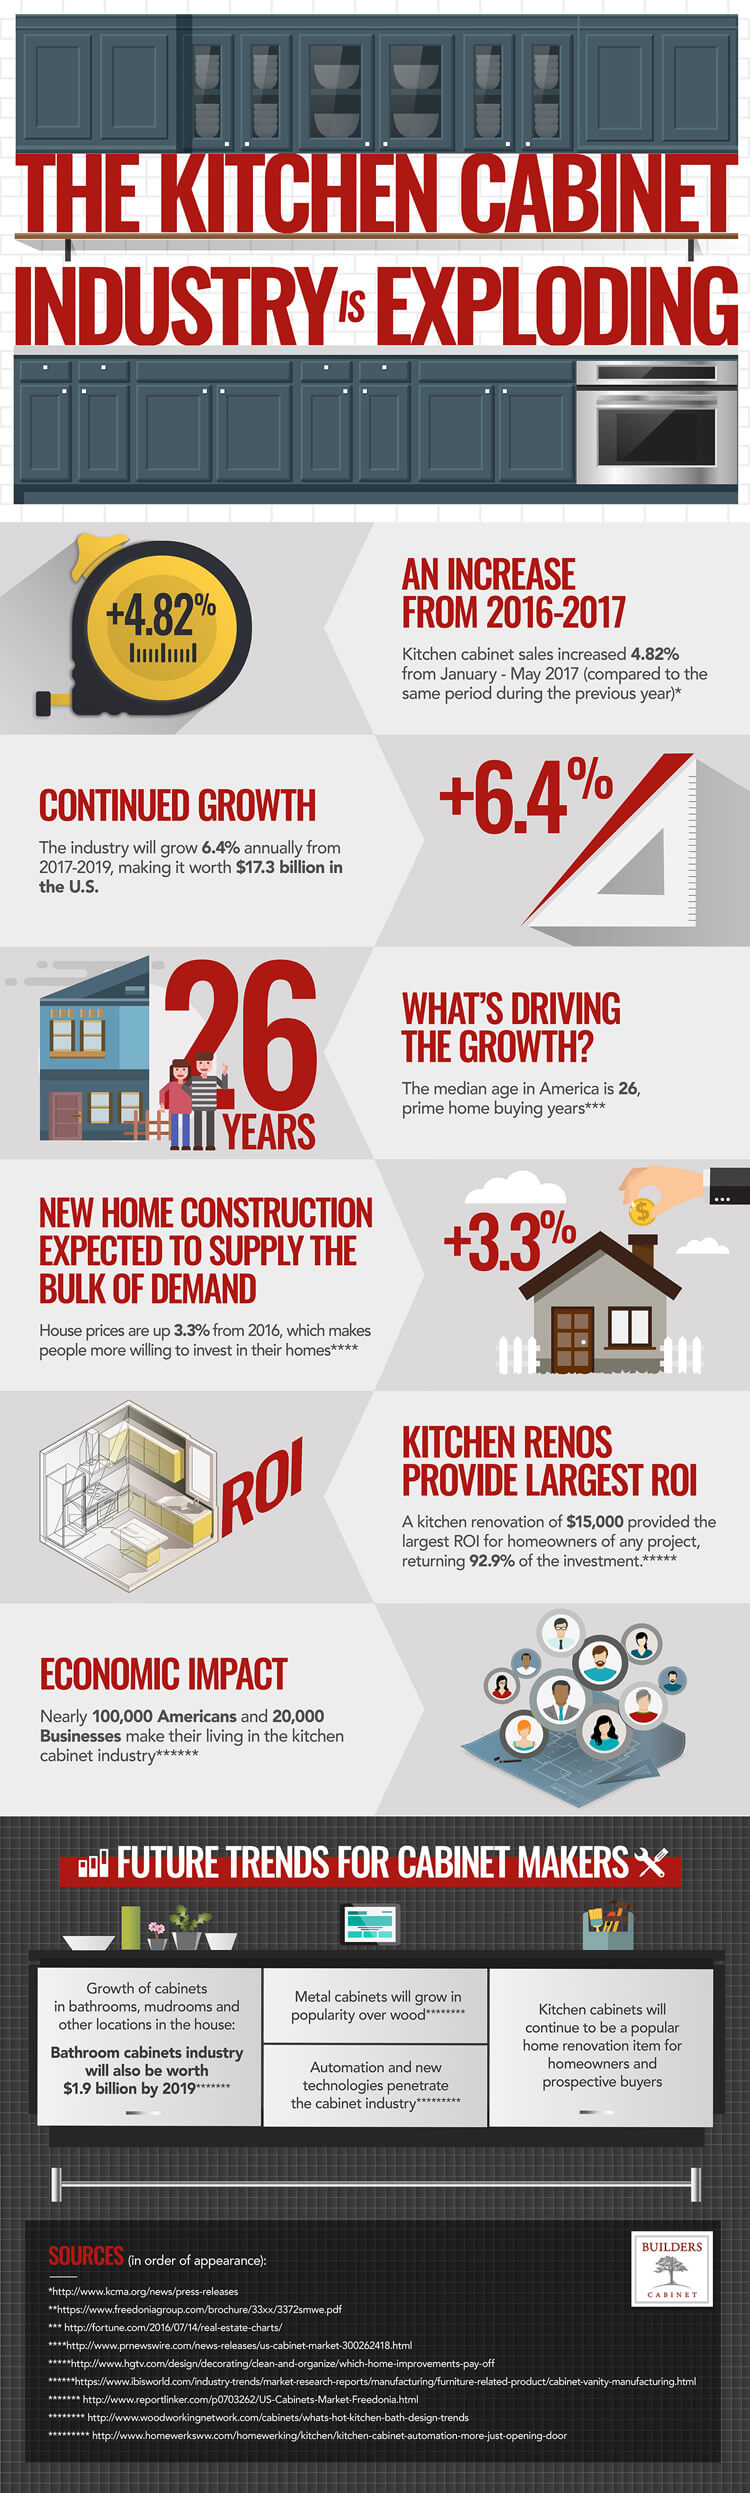 Kitchen-cabinet-industry-infographic-plaza